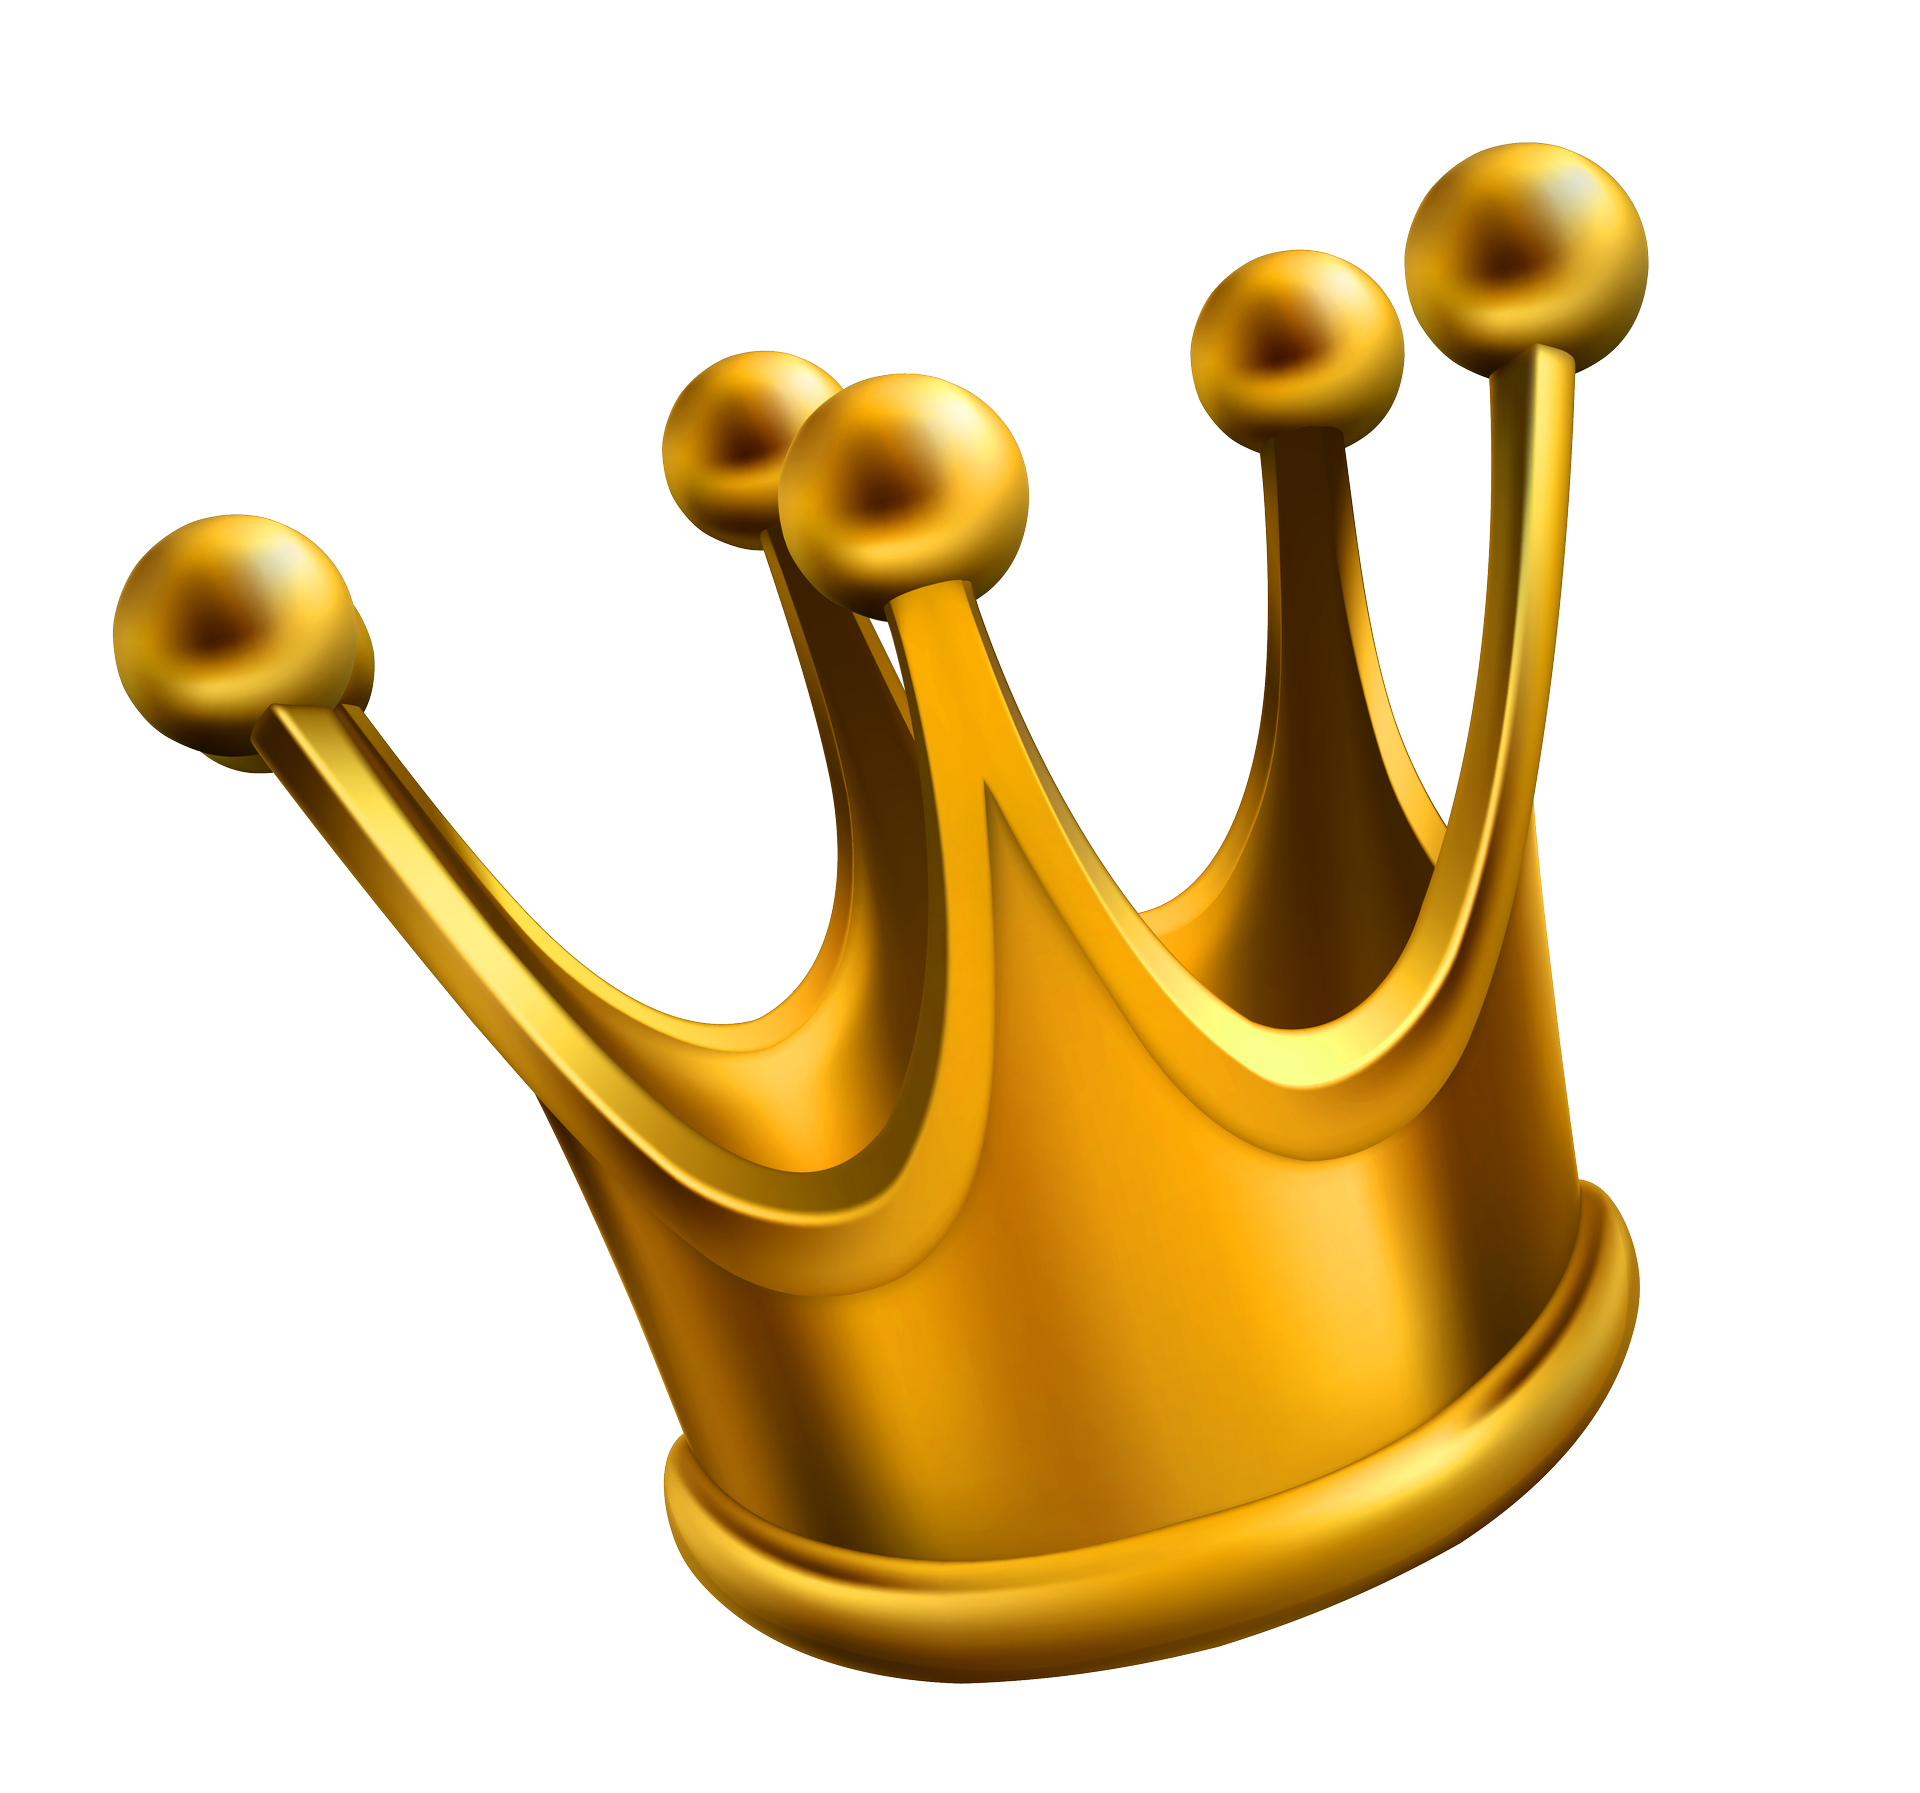 Gold purple crown clipart png transparent Crown Clipart at GetDrawings.com | Free for personal use Crown ... png transparent